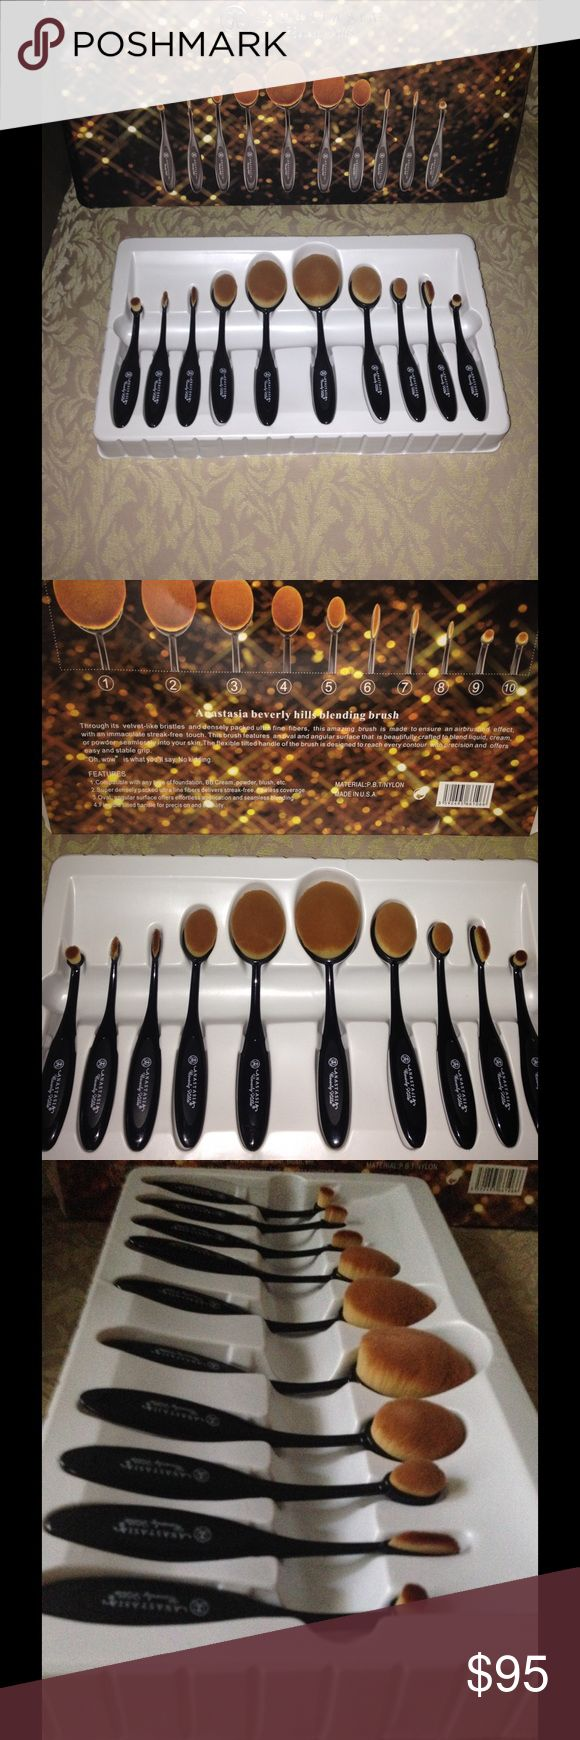 Anastasia Beverly Hills 10 piece Oval Brush Set Anastasia Beverly Hills 10 piece Oval brush Set. New in box . Never used. Box has some dents. Perfect for all makeup blending and or applying . High quality bristles super flexible handle. No trades on this item. Thank You for looking. Anastasia Beverly Hills Makeup Brushes & Tools